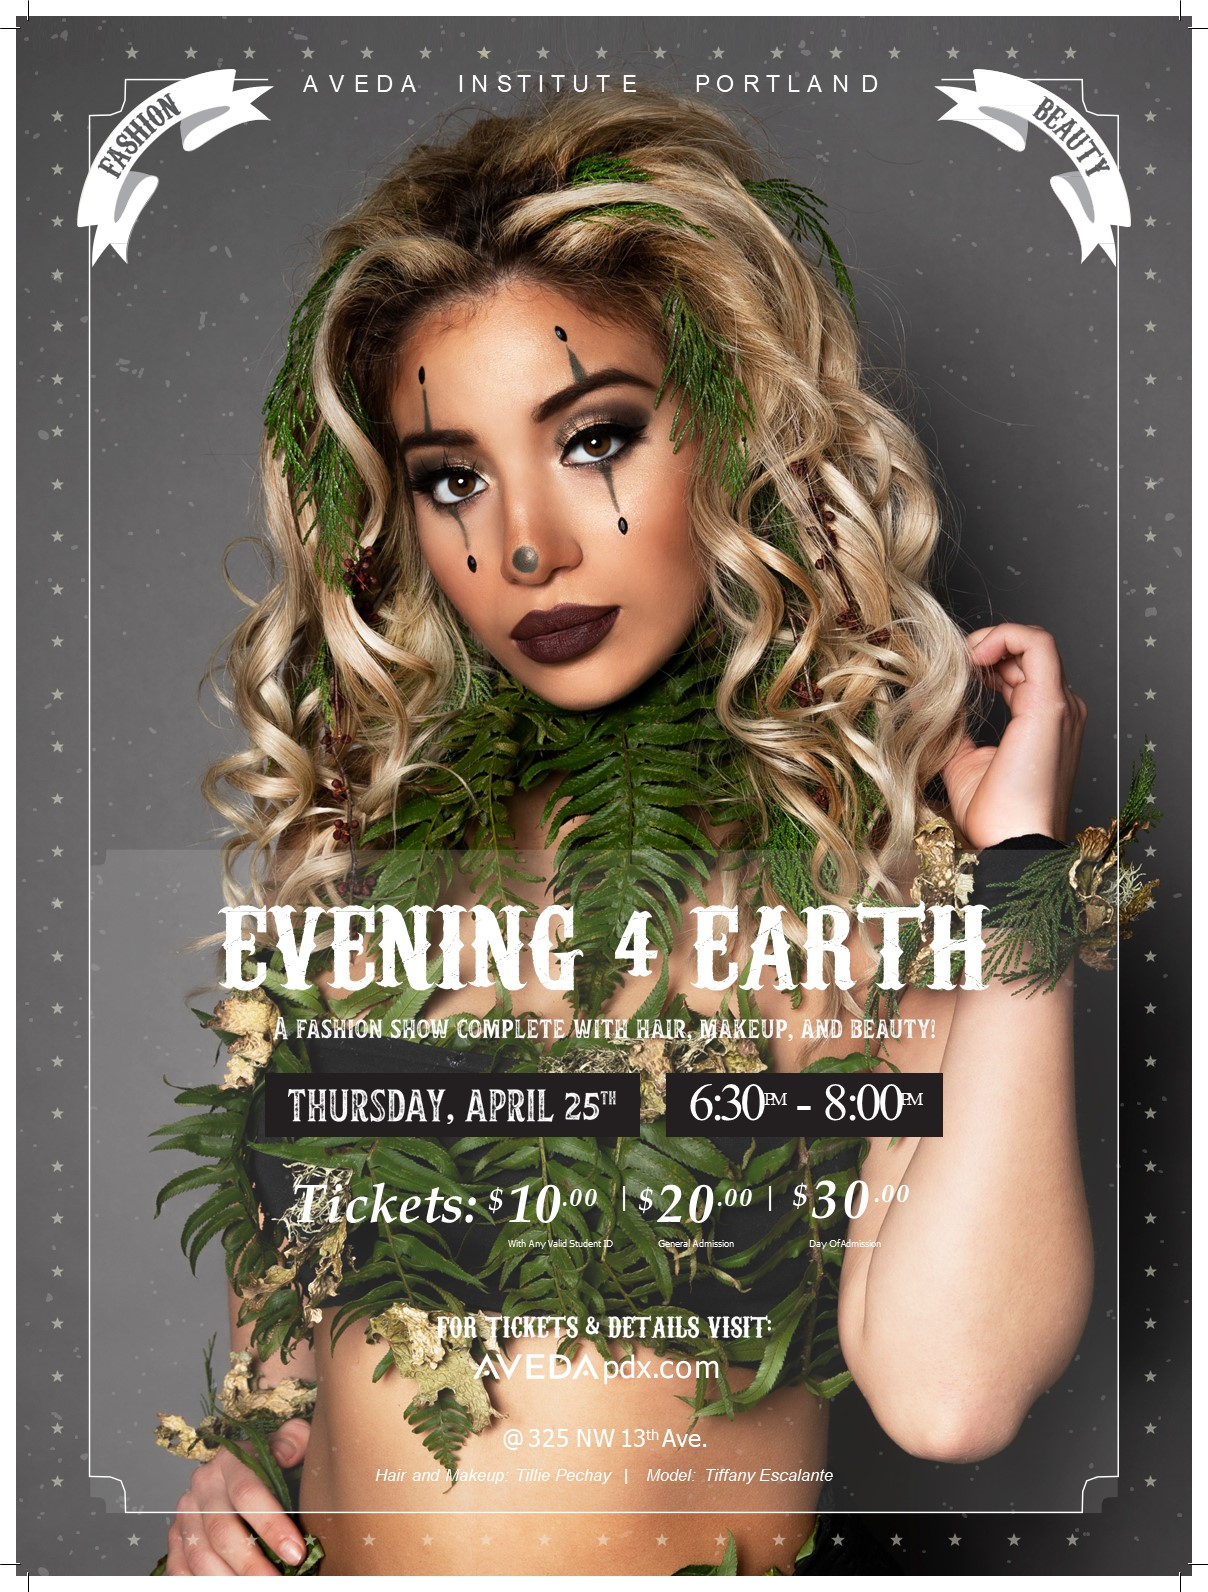 poster, evening 4 earth, earth month, marketing, photoshoot, circus, carnival, fundraising, contest, editorial